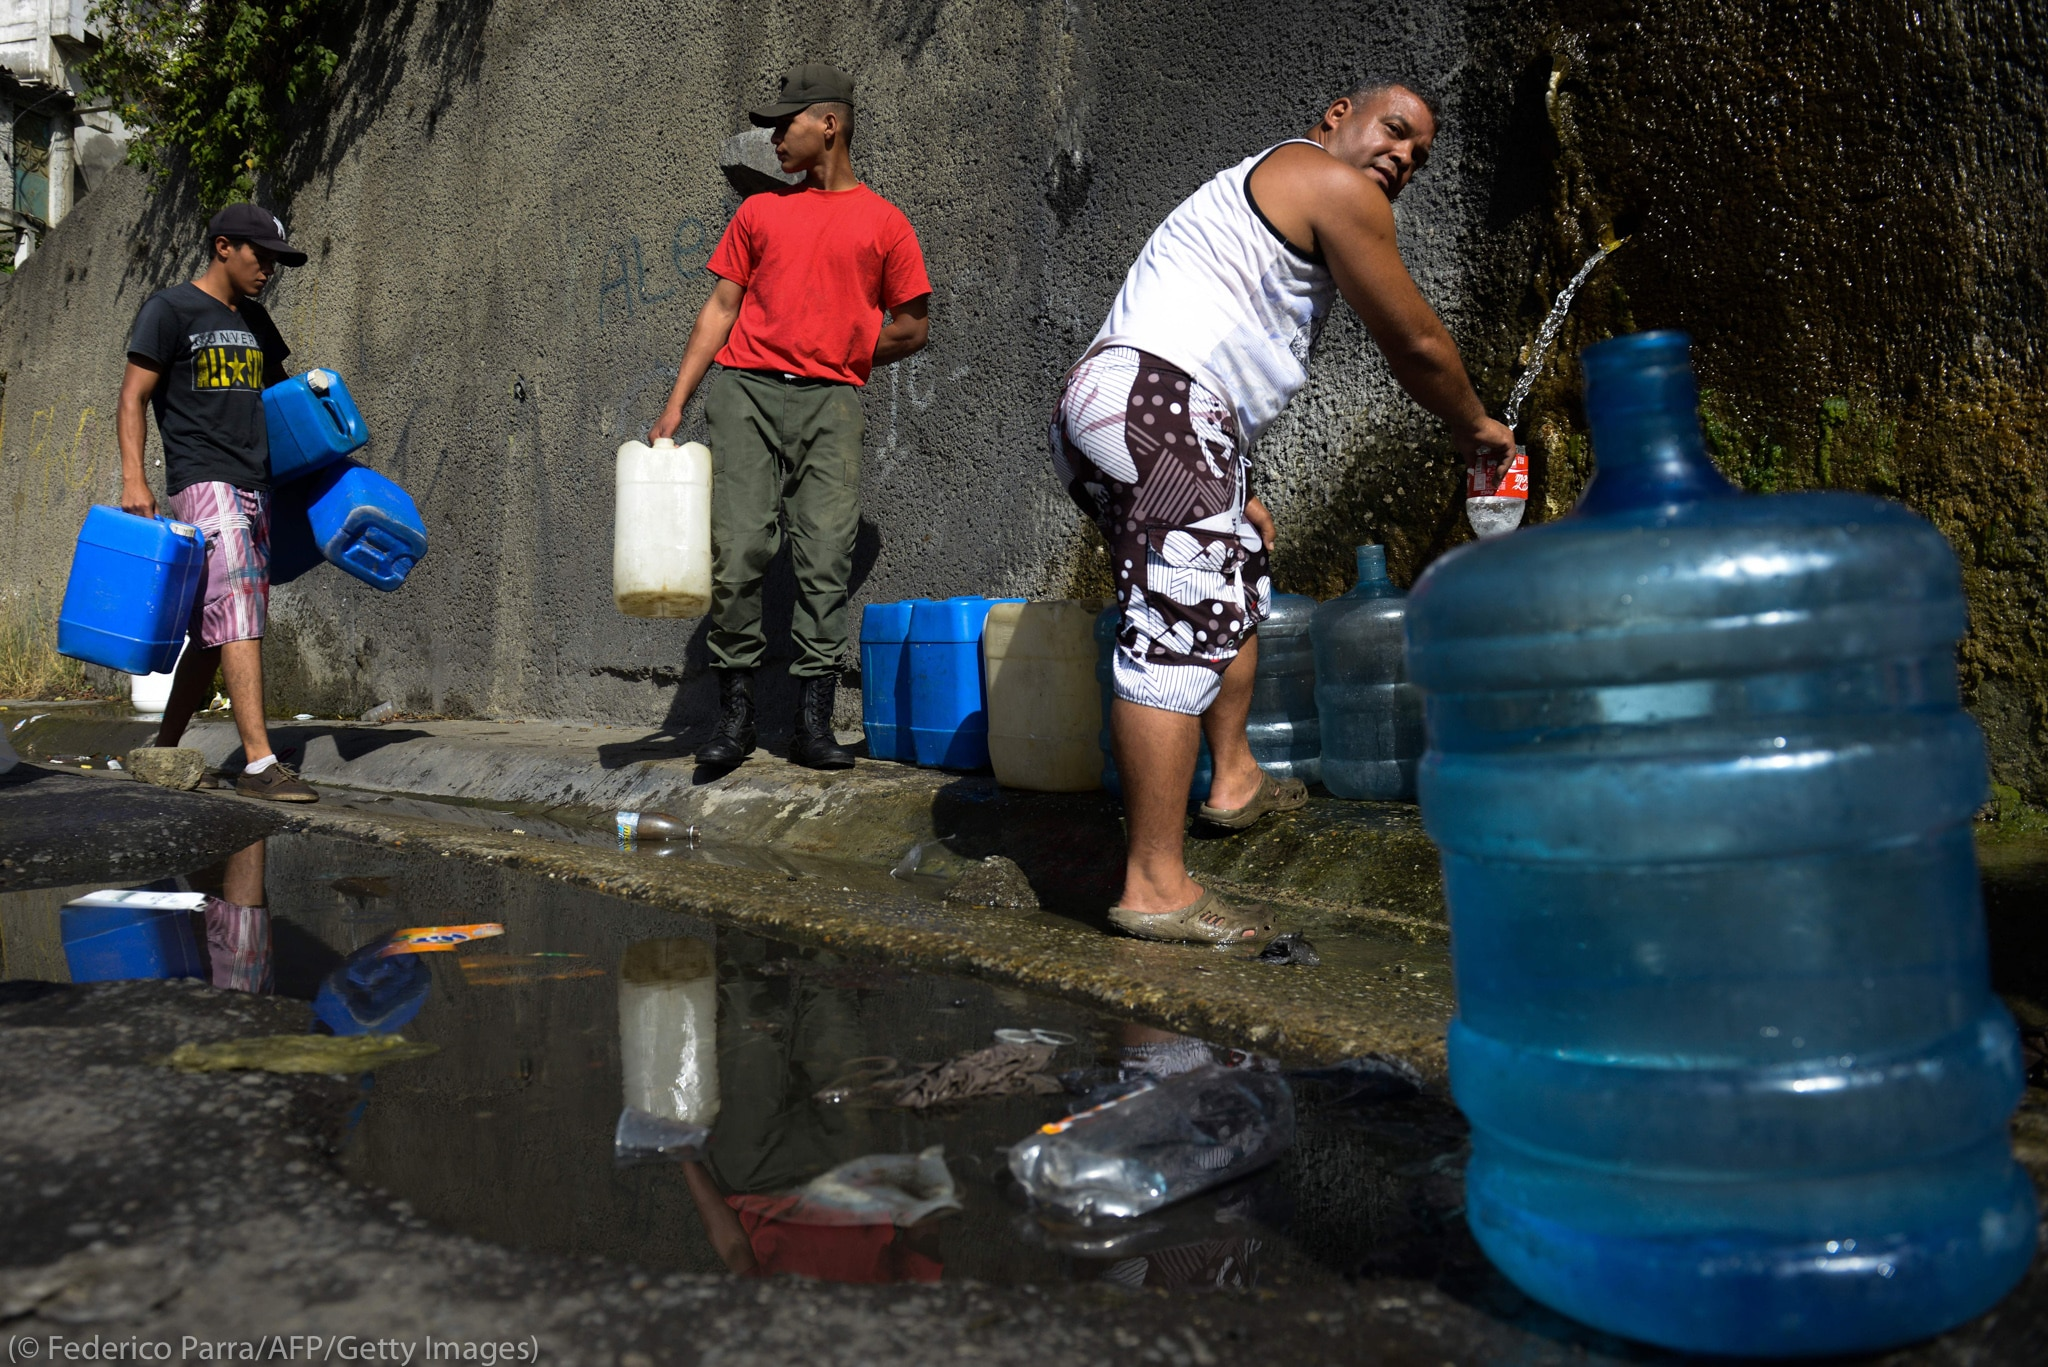 People filling jerrycans with water (© Federico Parra/AFP/Getty Images)